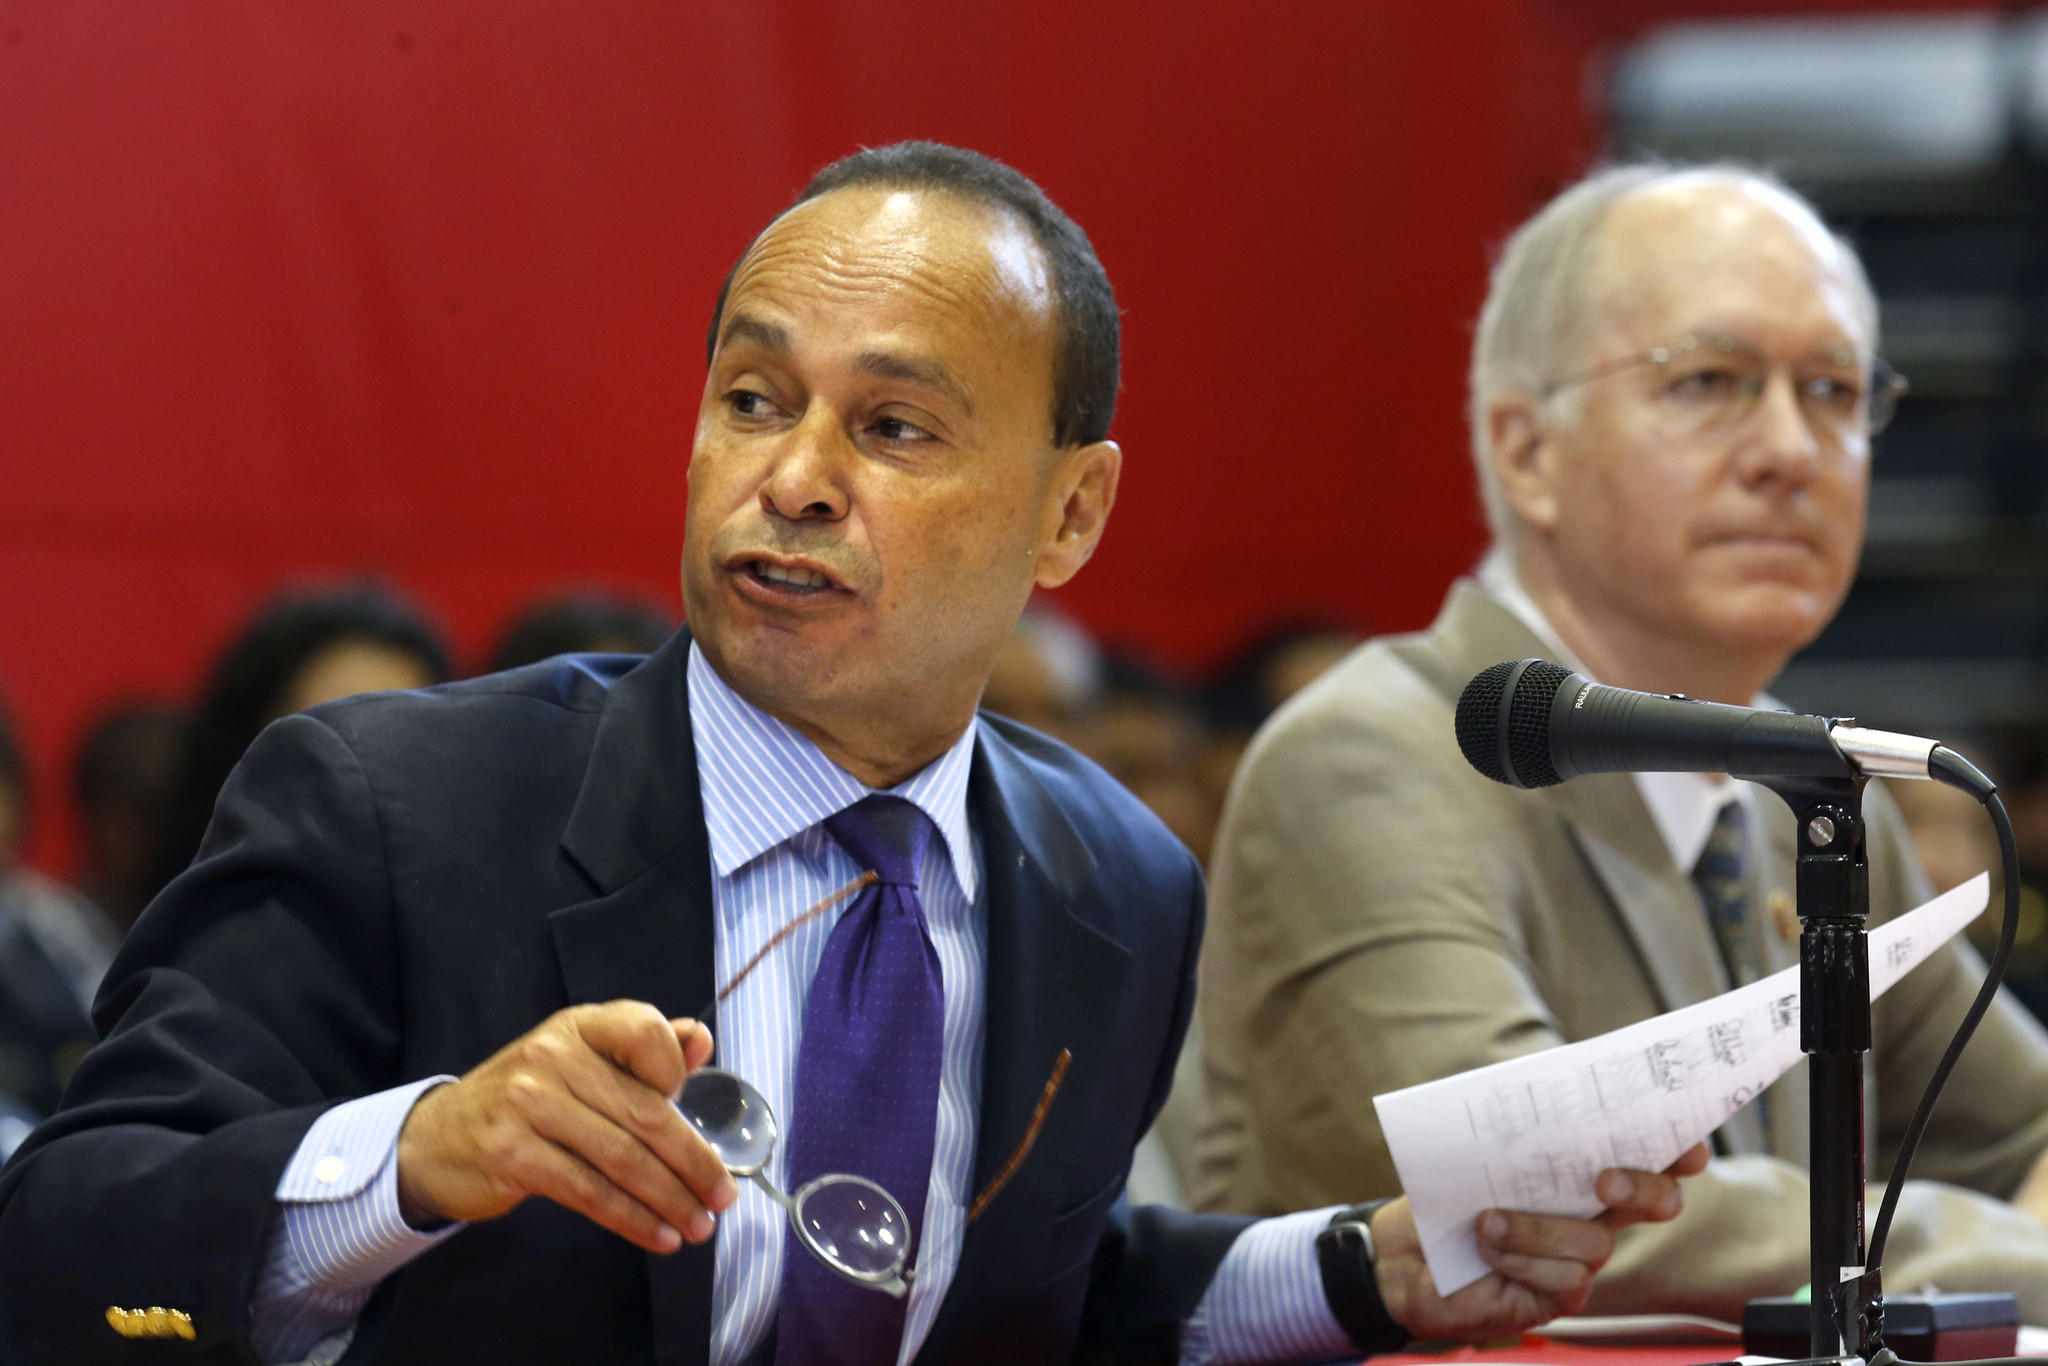 U.S. Rep. Luis Gutierrez, left, speaks at a Senate hearing in May.